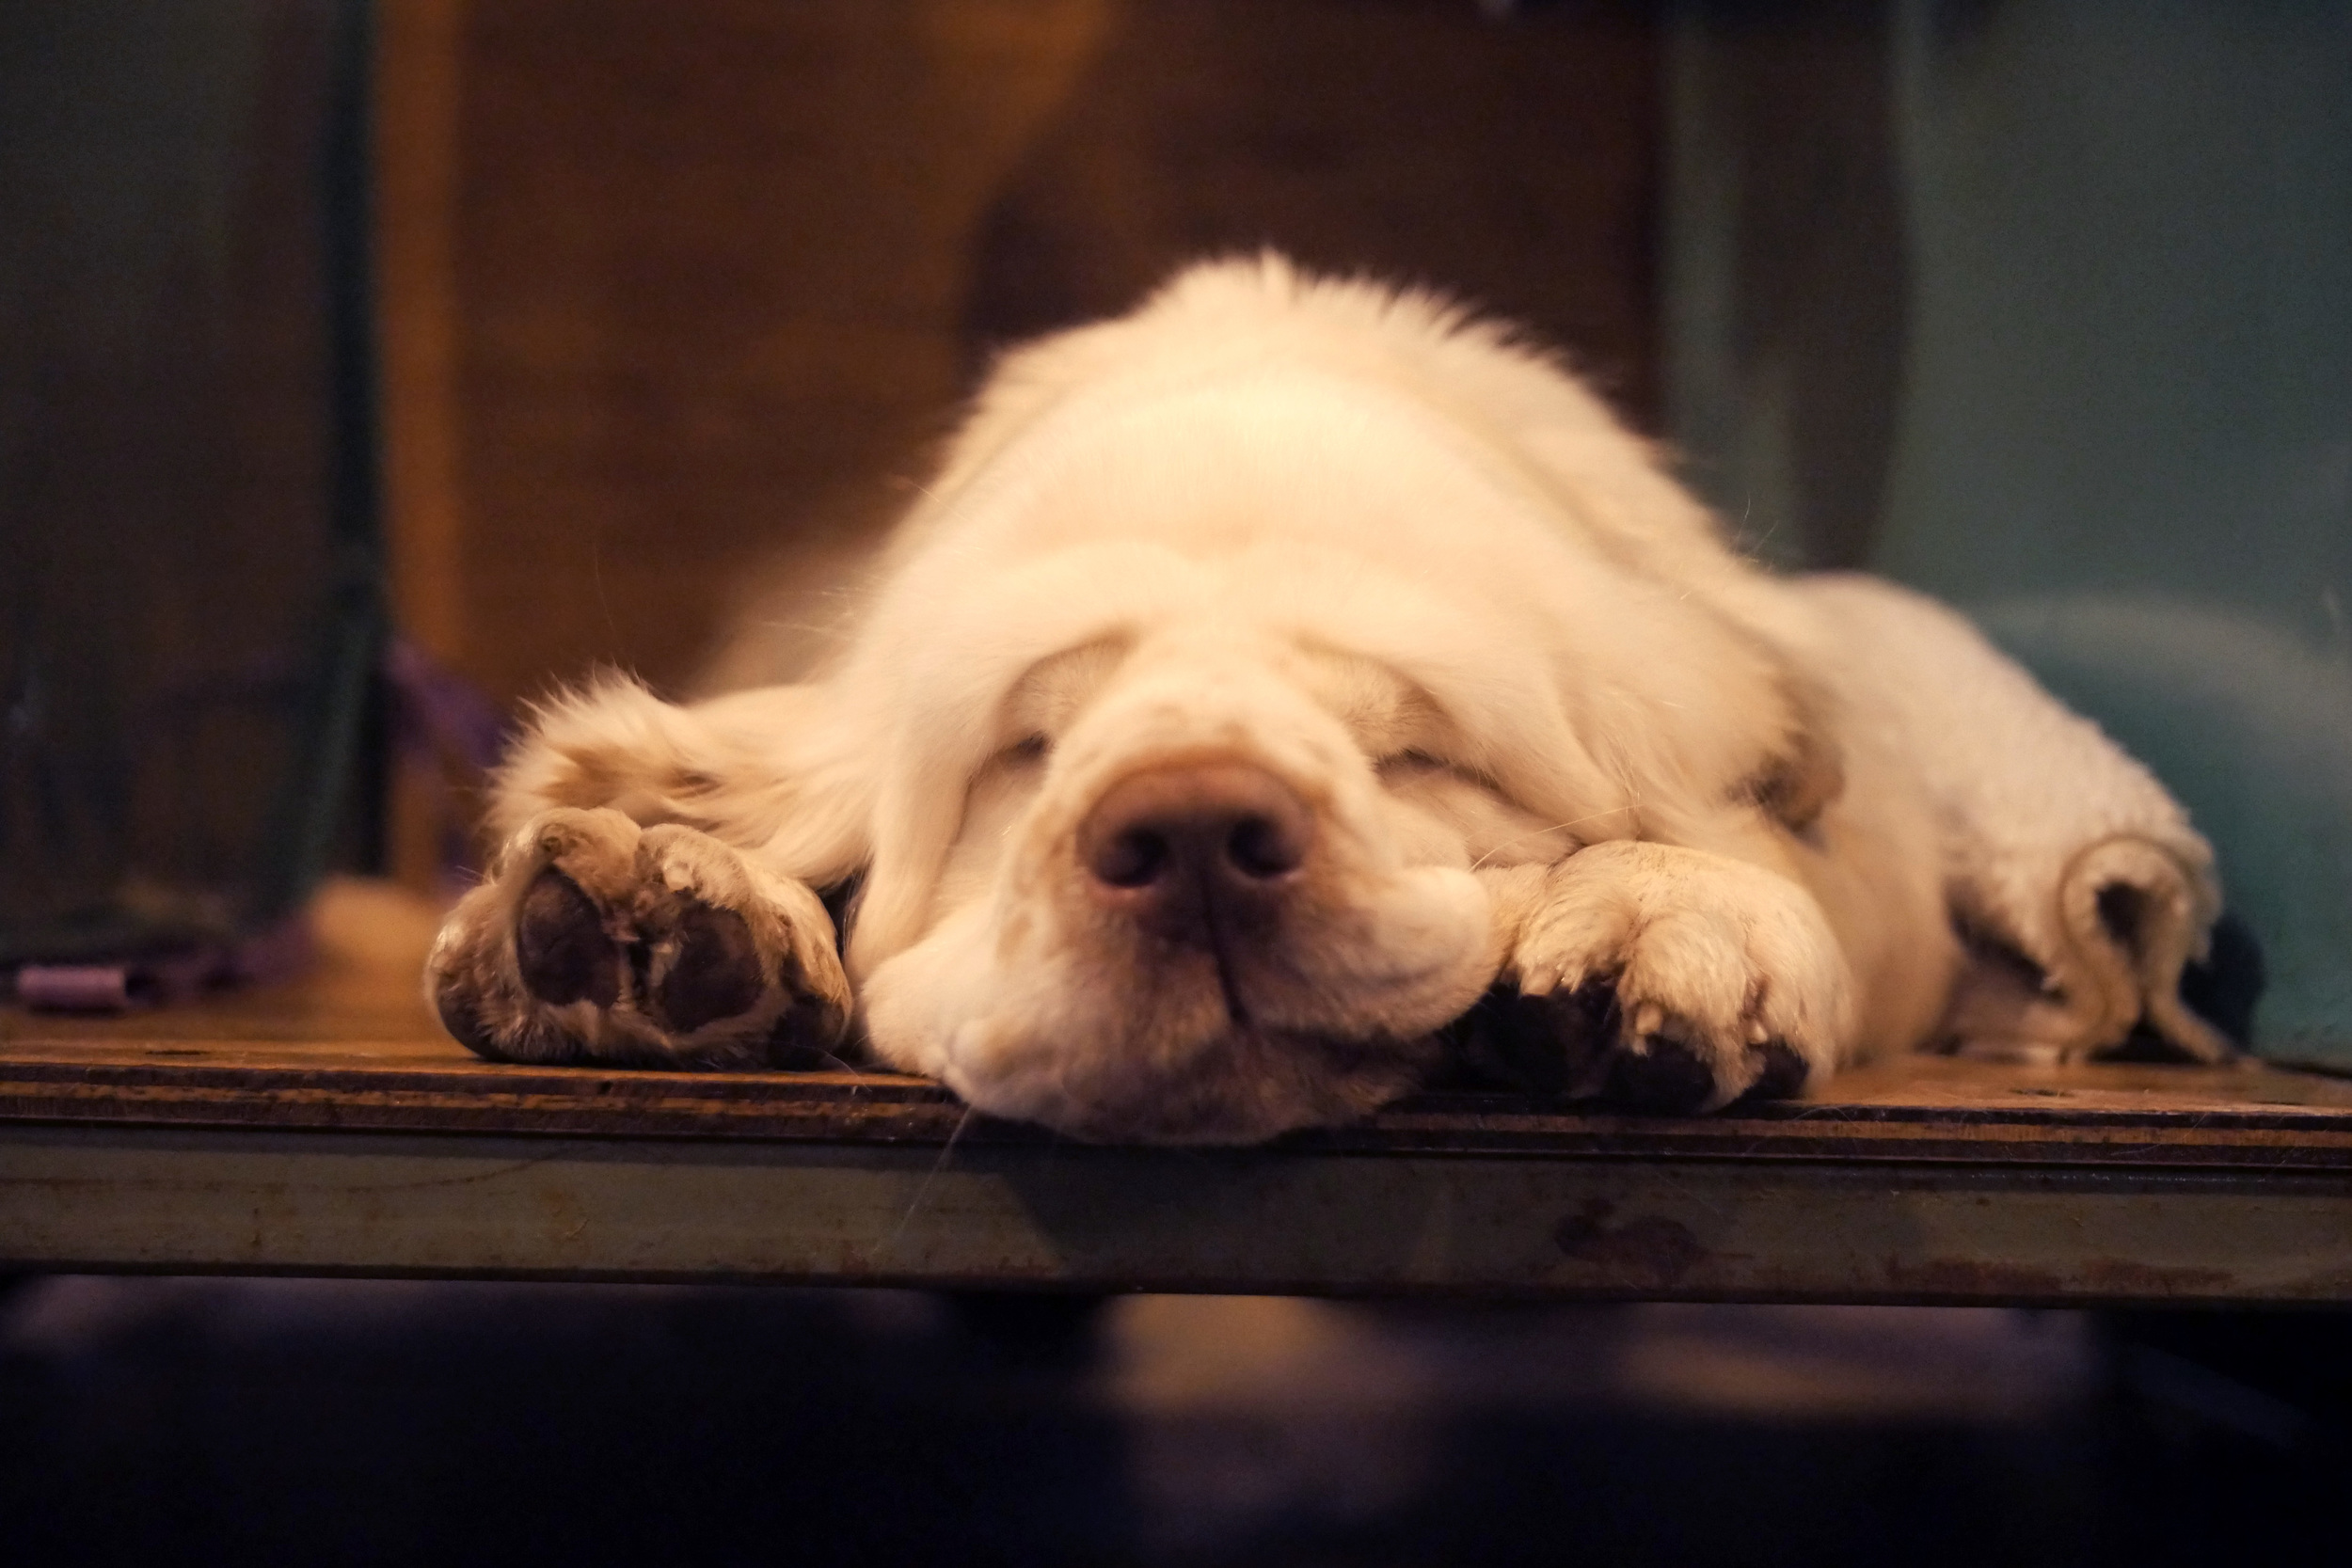 A clumber spaniel also enjoying some serious nap time.